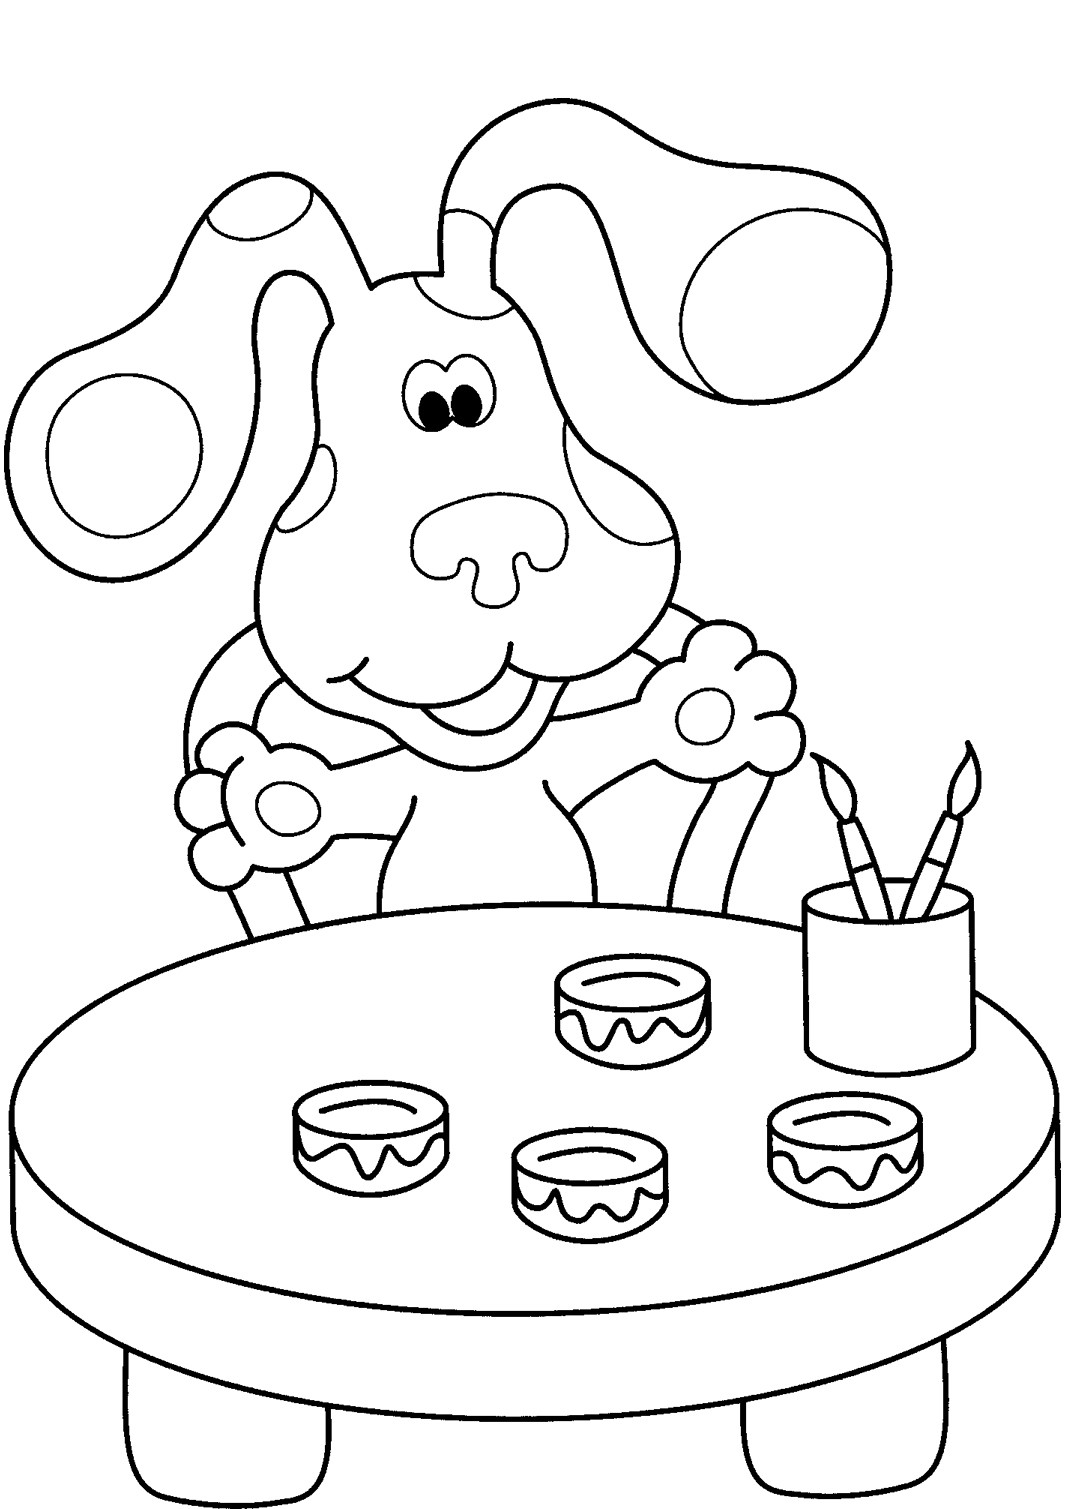 Blue Coloring Pages For Kids  Free Printable Blues Clues Coloring Pages For Kids